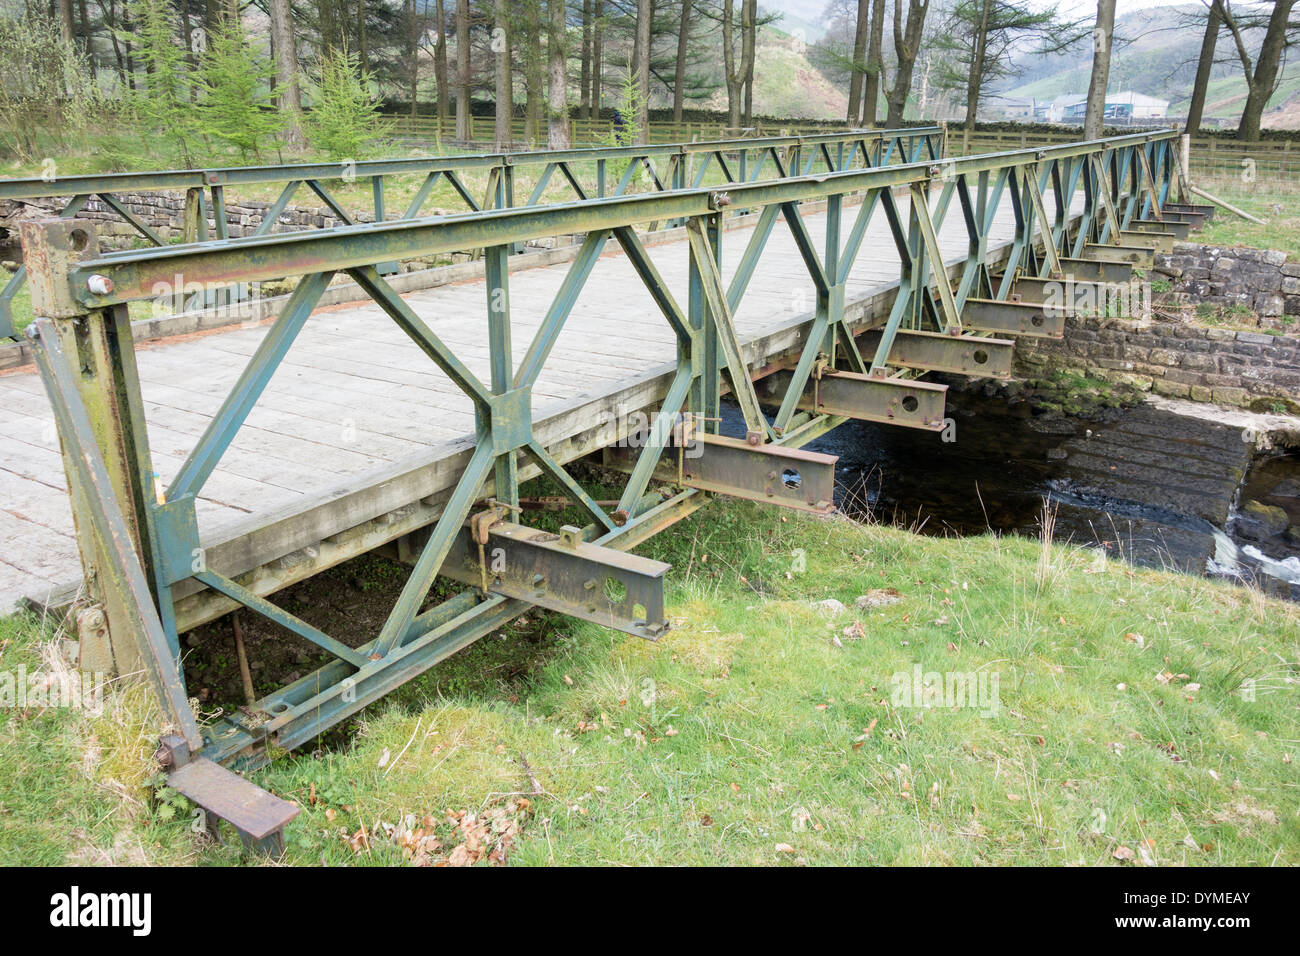 Small Portable Bridges : Bailey bridge stock photos images